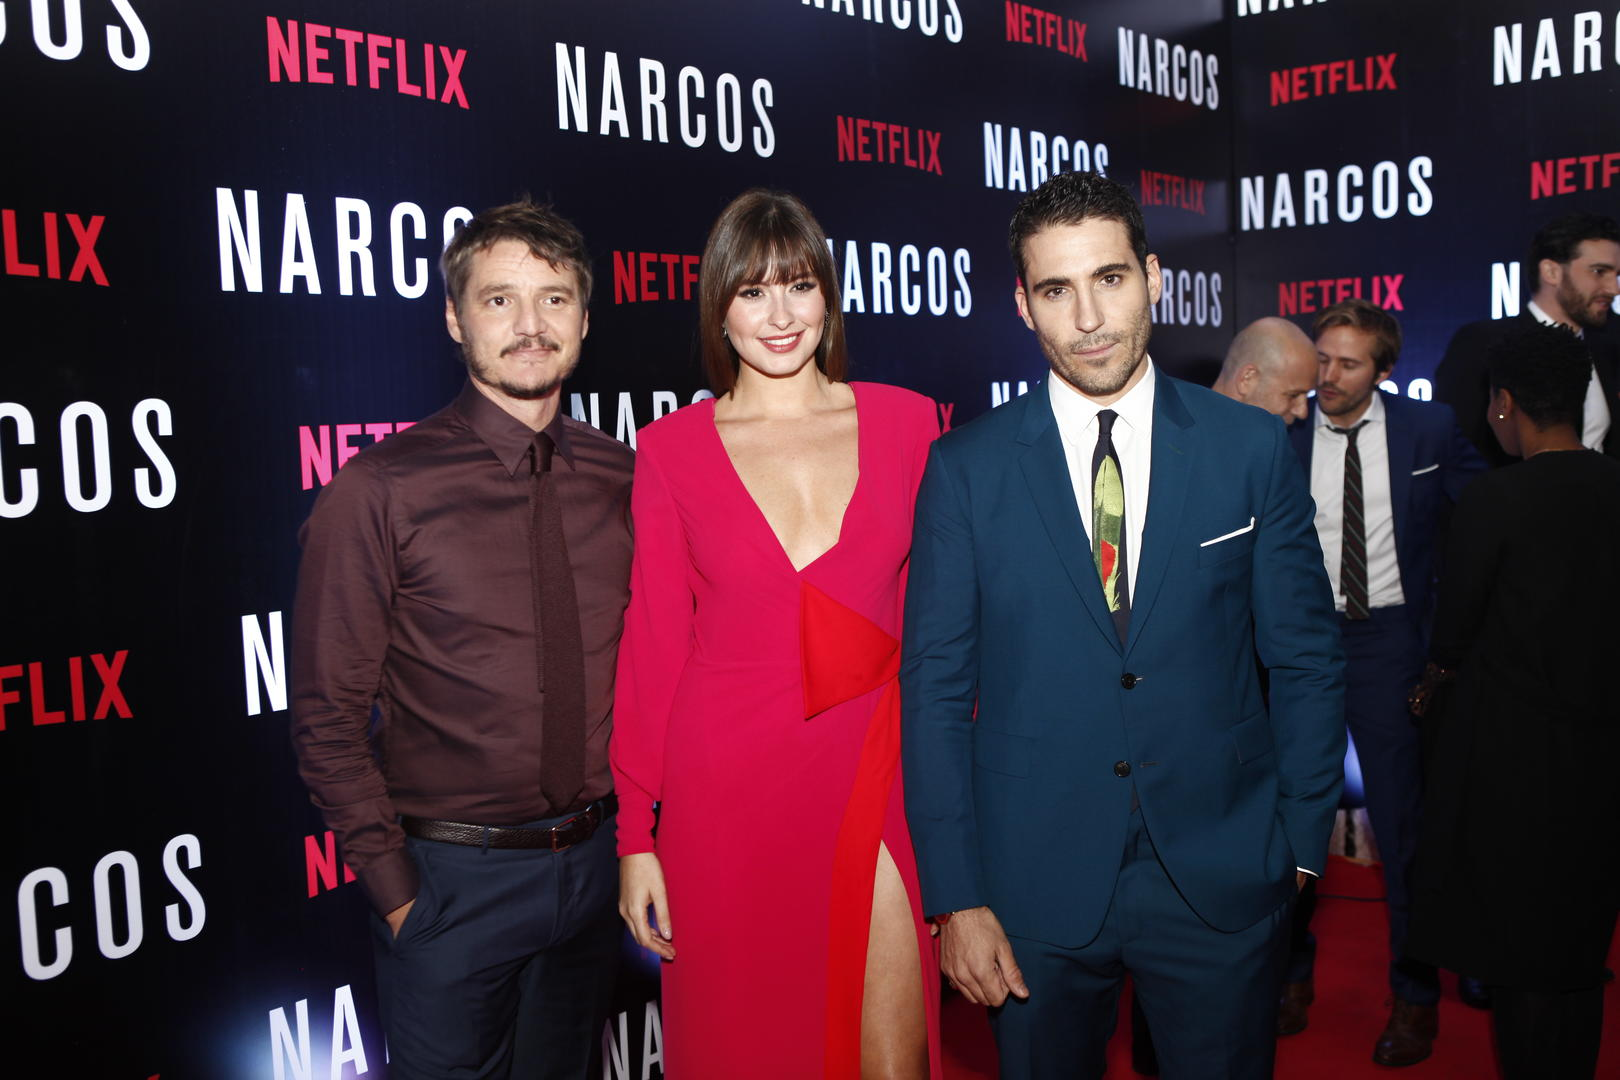 A new reason to Netflix and chill as all episodes of Narcos